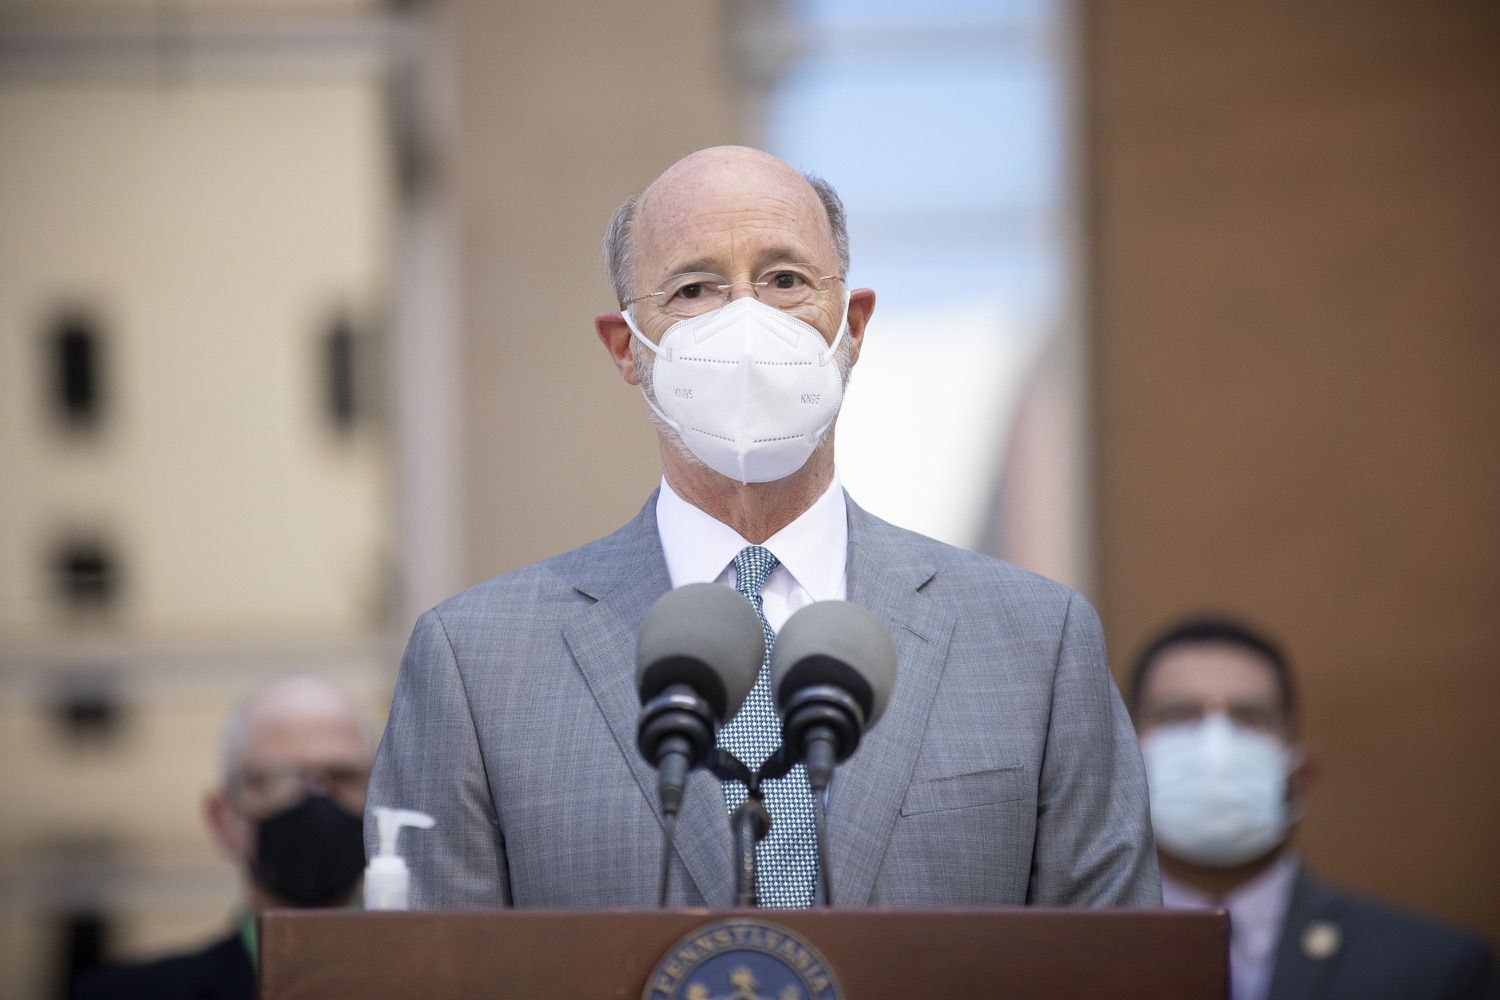 """<a href=""""https://filesource.wostreaming.net/commonwealthofpa/photo/18688_gov_vaccines_dz_015.jpg"""" target=""""_blank"""">⇣Download Photo<br></a>Pennsylvania Governor Tom Wolf speaking with the press.  As Pennsylvania continues its accelerated COVID-19 vaccination plan, Pennsylvanians who are not able to leave their homes must be reached, and various state agencies and community groups are helping. Governor Tom Wolf visited Reading to talk about how the state and its partners are using various means to reach people not able to leave home to be vaccinated against COVID-19.  APRIL 26, 2021 - READING, PA"""